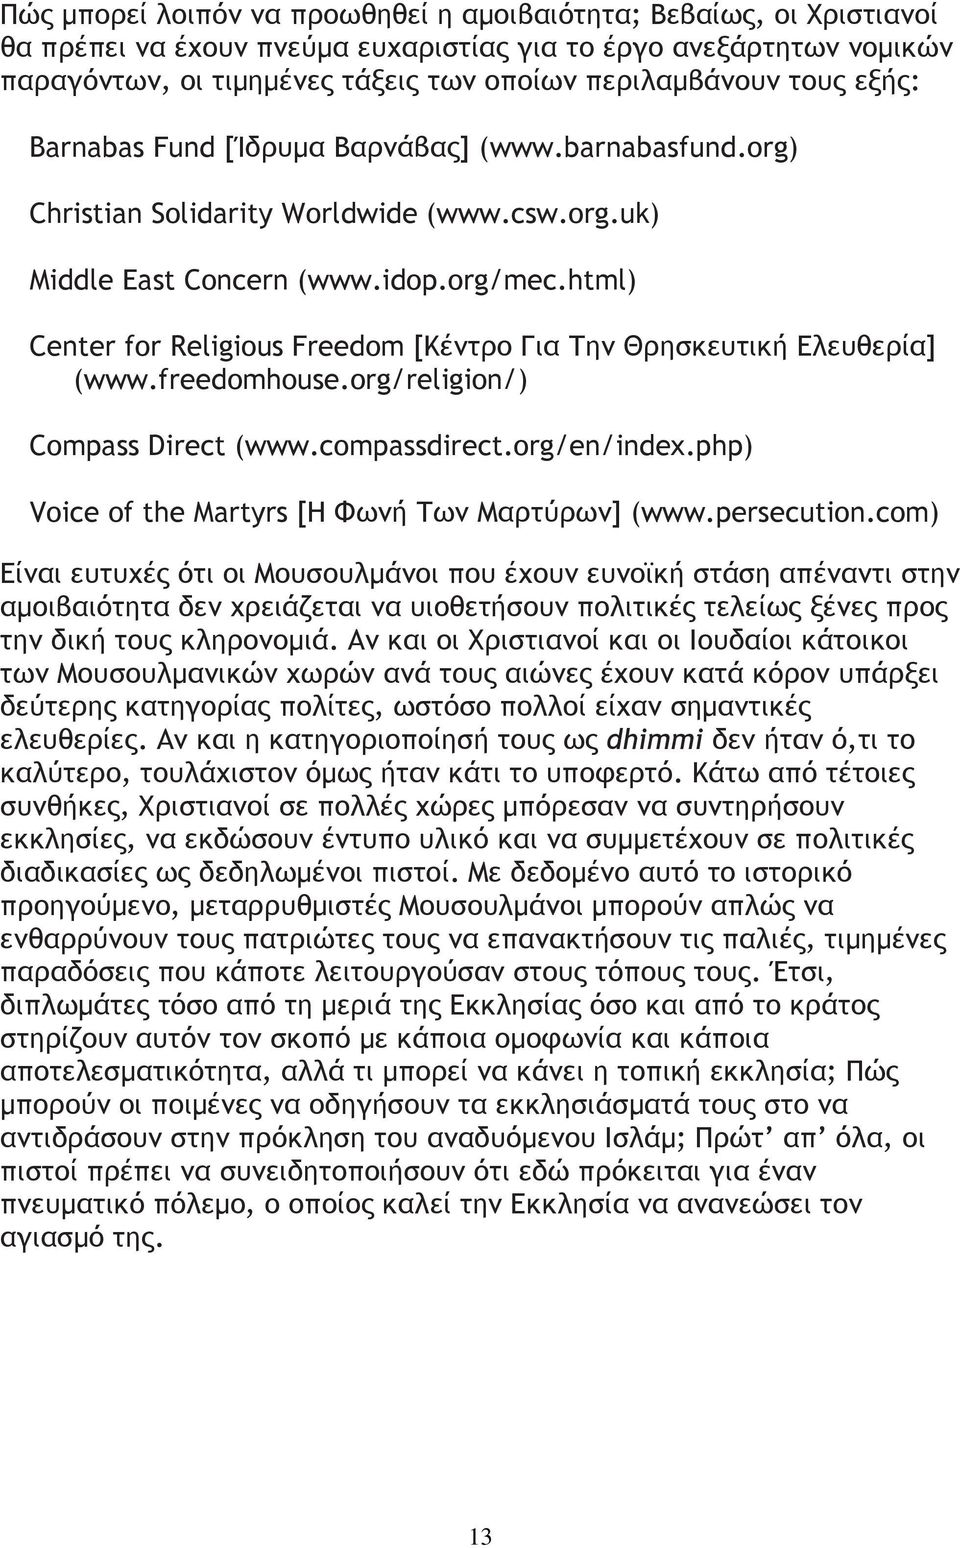 html) Center for Religious Freedom [Κέντρο Για Την Θρησκευτική Ελευθερία] (www.freedomhouse.org/religion/) Compass Direct (www.compassdirect.org/en/index.